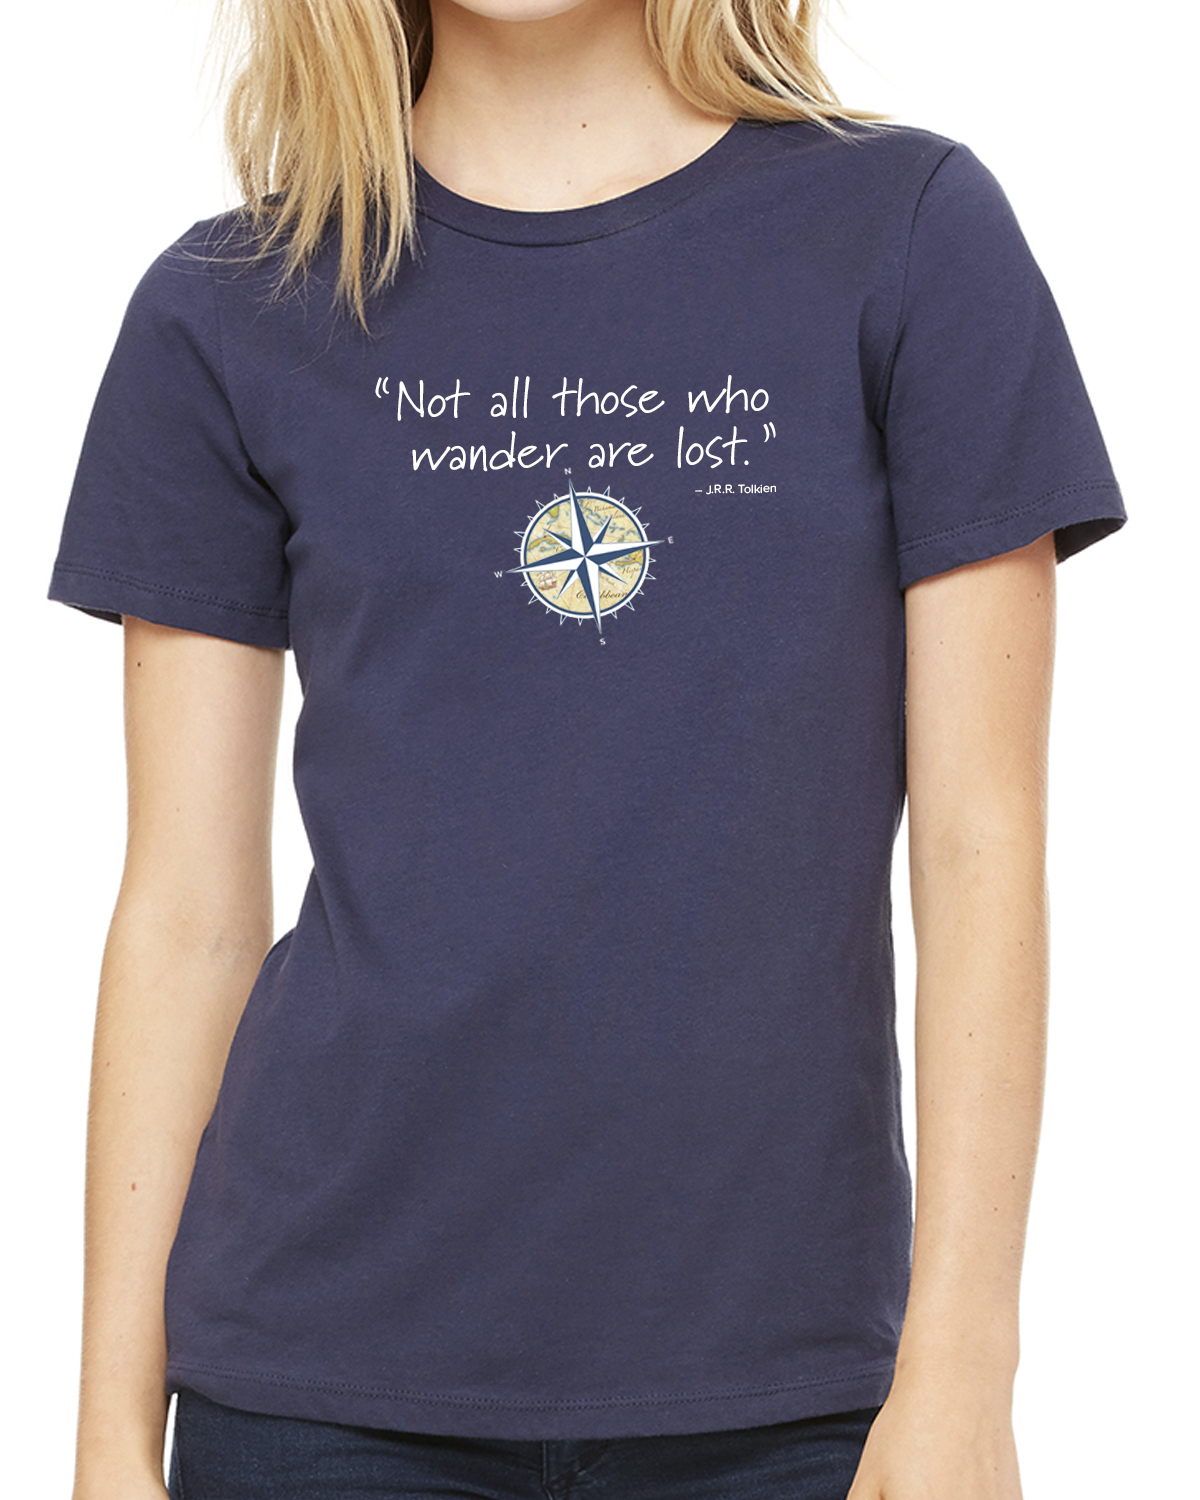 Not all those who wander are lost women's indigo t-shirt